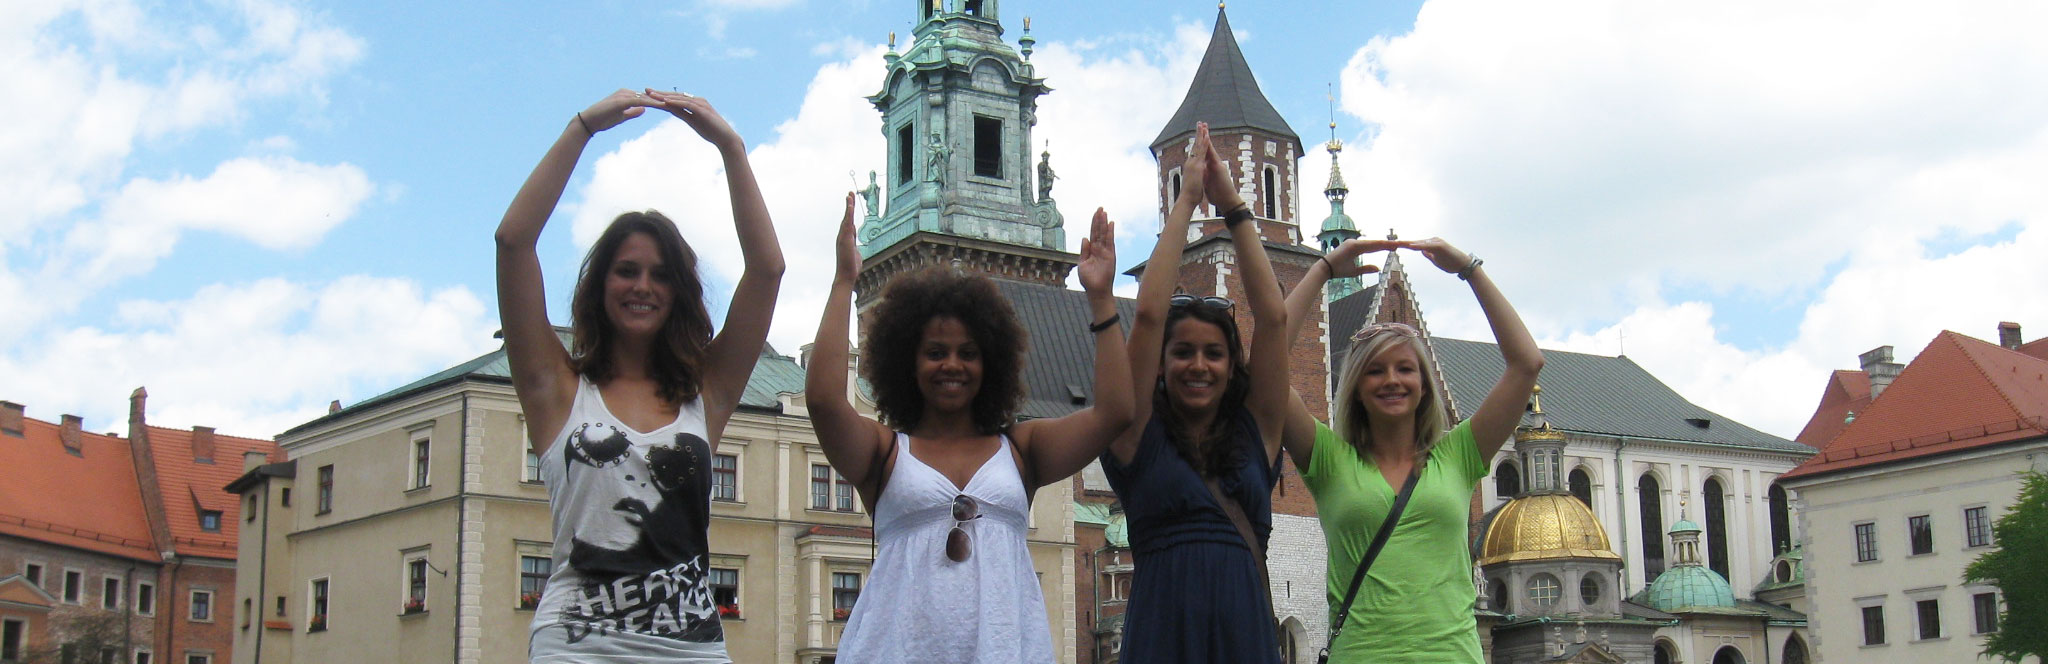 Ohio State students participate in O-H-I-O during a study abroad trip.